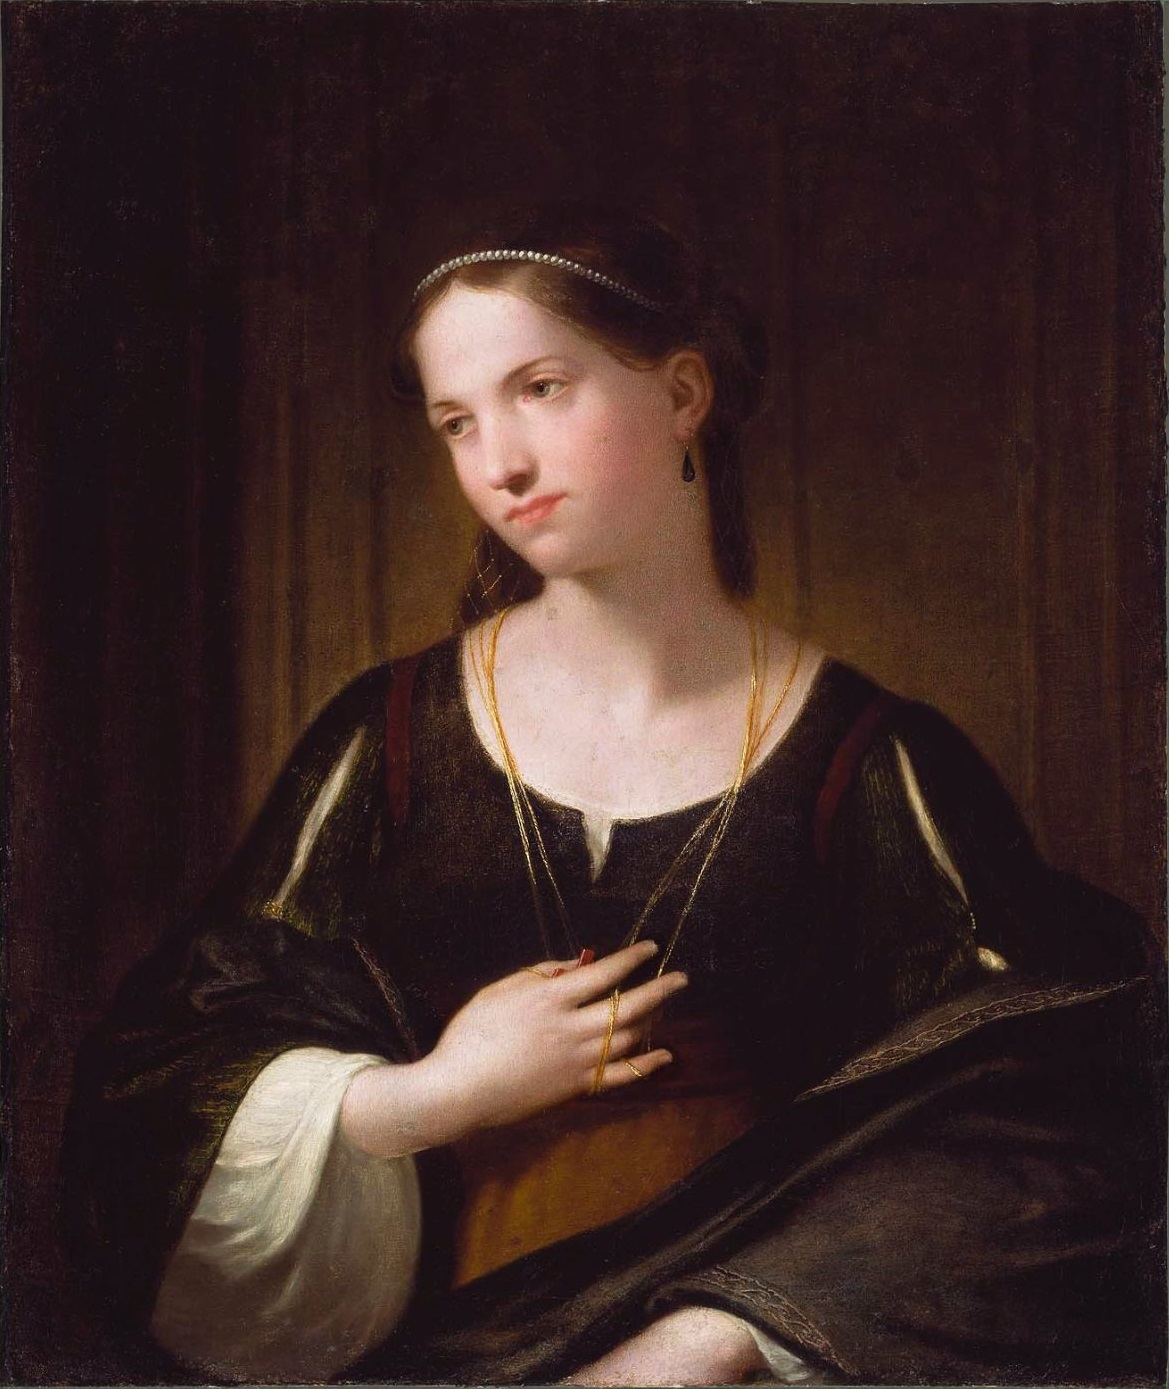 https://i0.wp.com/upload.wikimedia.org/wikipedia/commons/7/7a/1819_Beatrice_byWashingtonAllston_MFABoston.jpeg